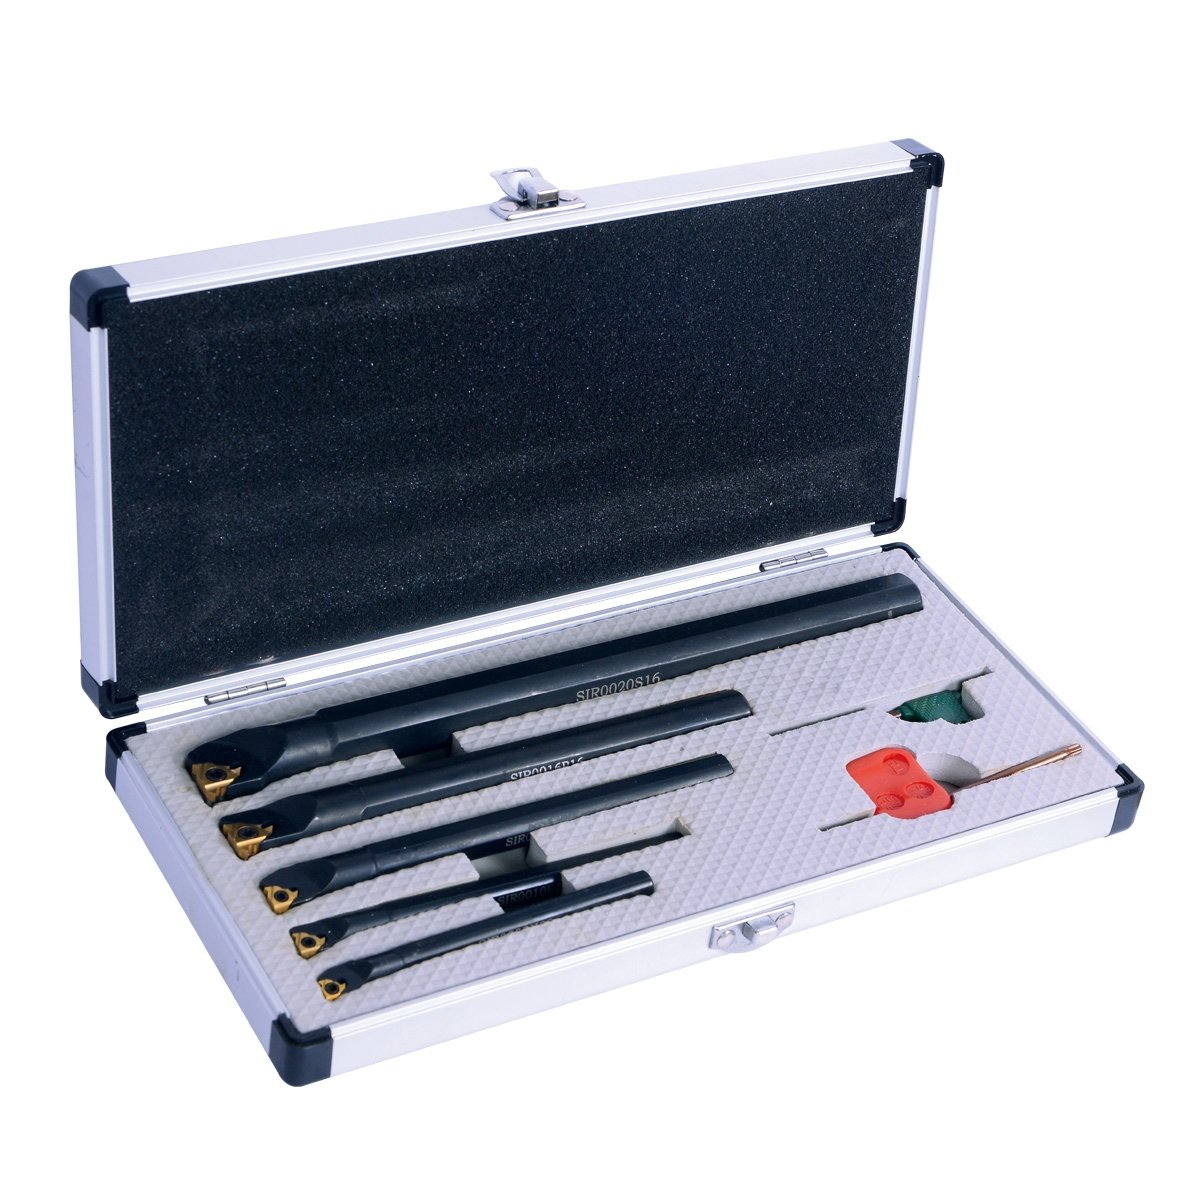 HHIP 2305-1005 5 Piece Index able Internal Threading Tool Holder Set